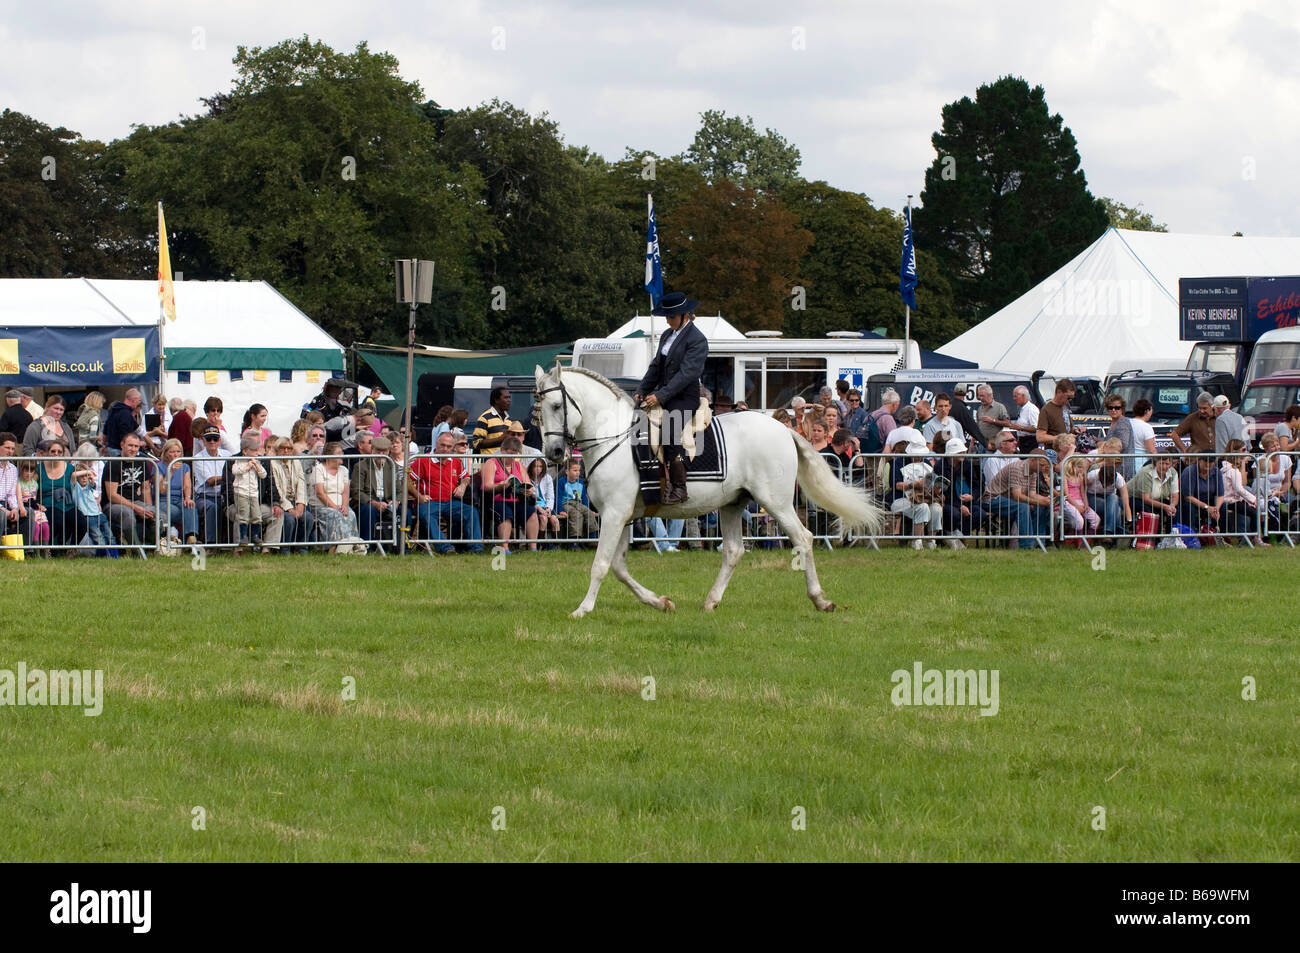 Spanish dressage at the Romsey Show 2008 - Stock Image